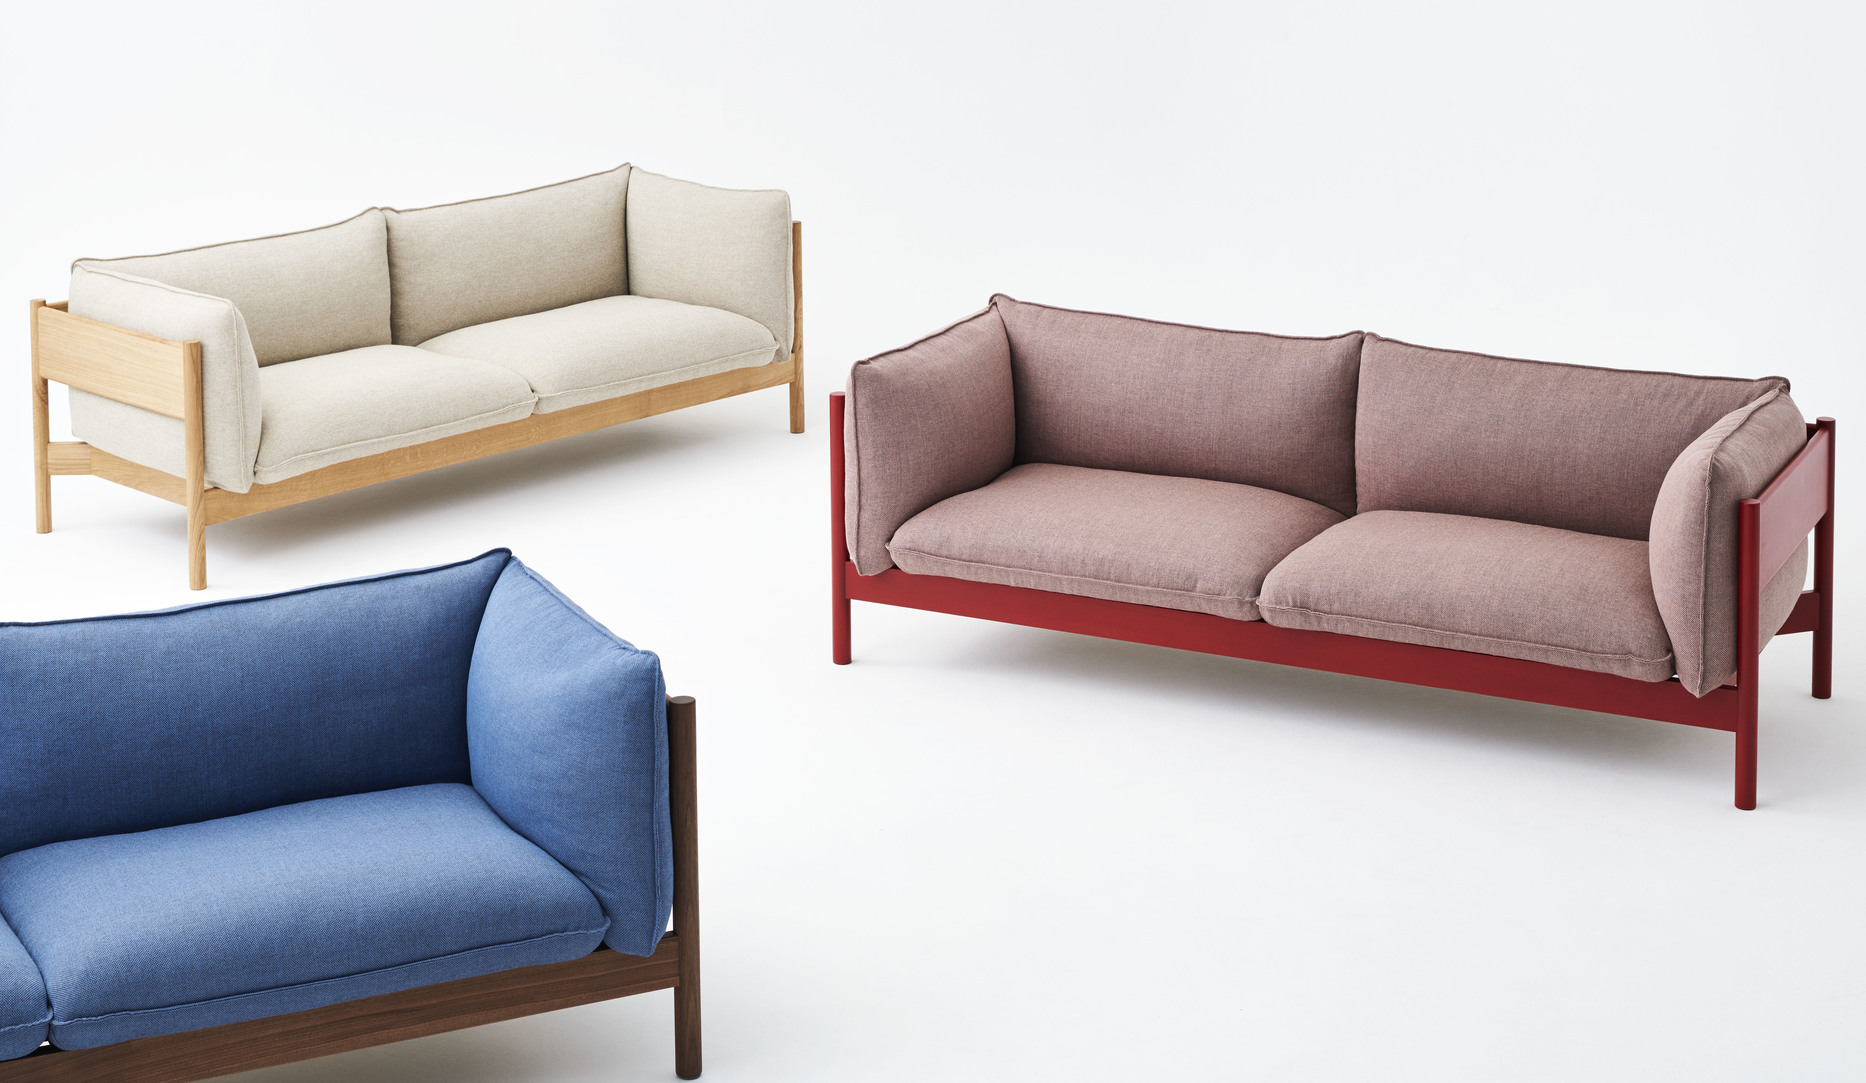 Three sofas displayed randomly. One is yellow, the other one is red, and the last one blue.